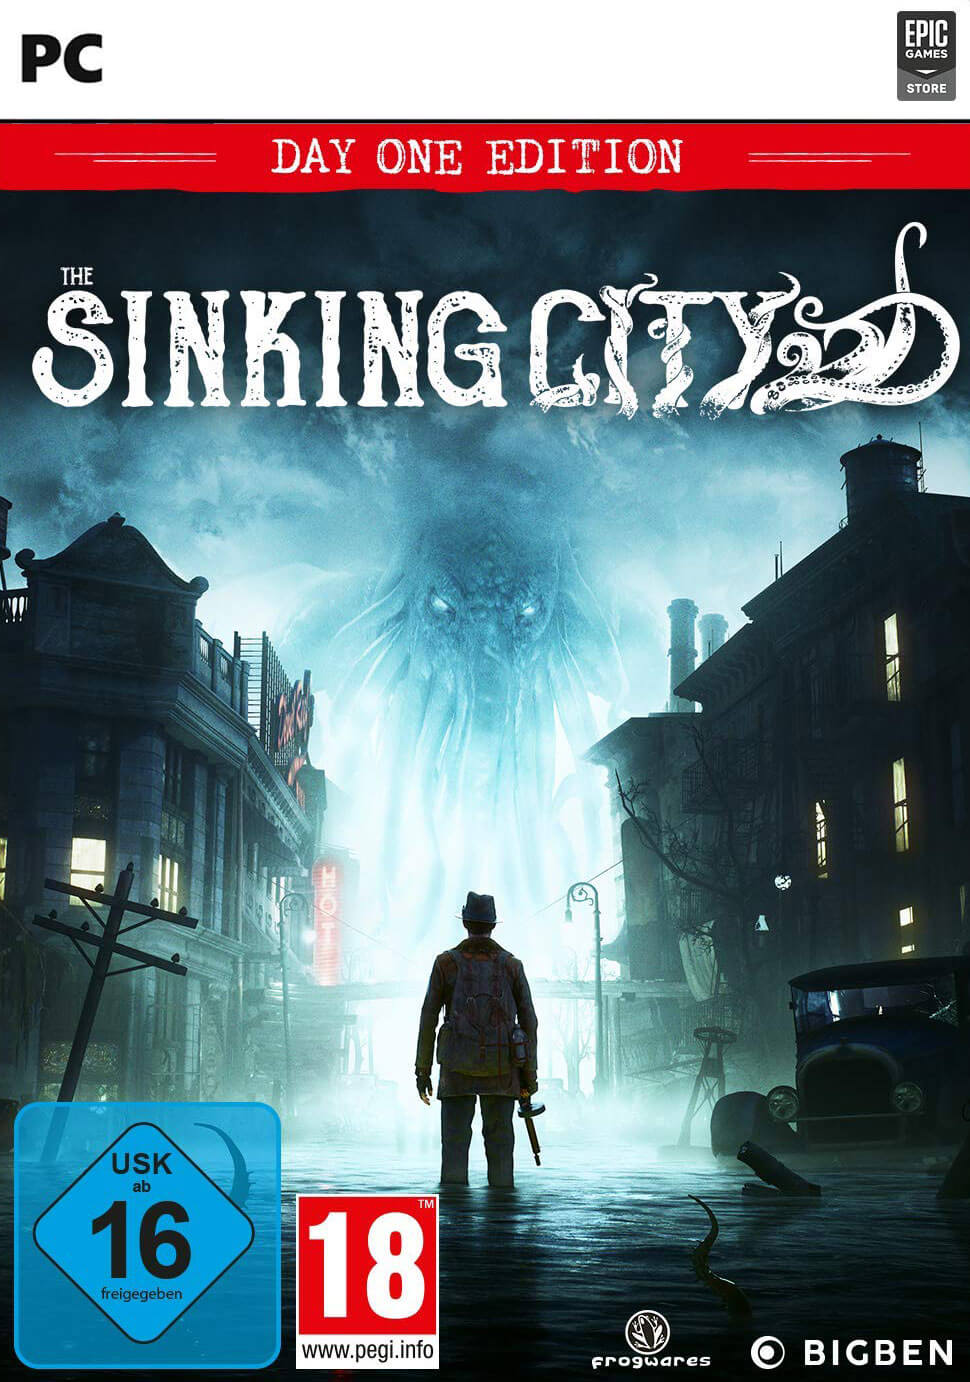 https://img5.downloadha.com/hosein/files/2019/06/The-Sinking-City-pc-cover-large.jpg